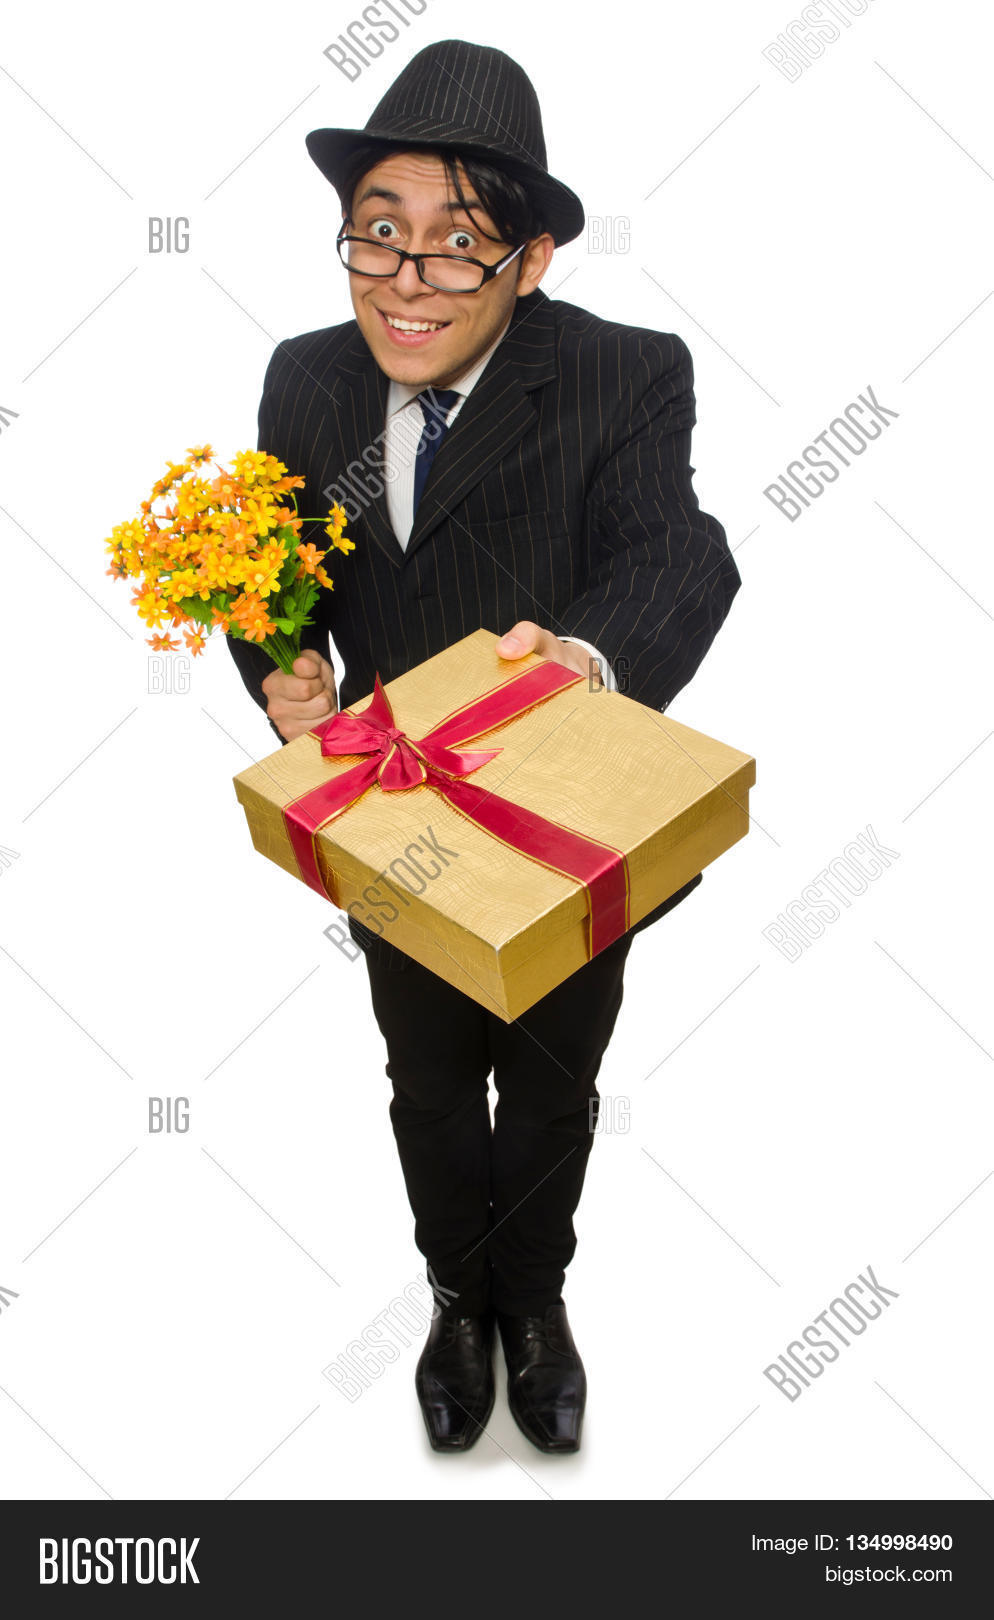 Funny man flowers image photo free trial bigstock funny man with flowers and giftbox izmirmasajfo